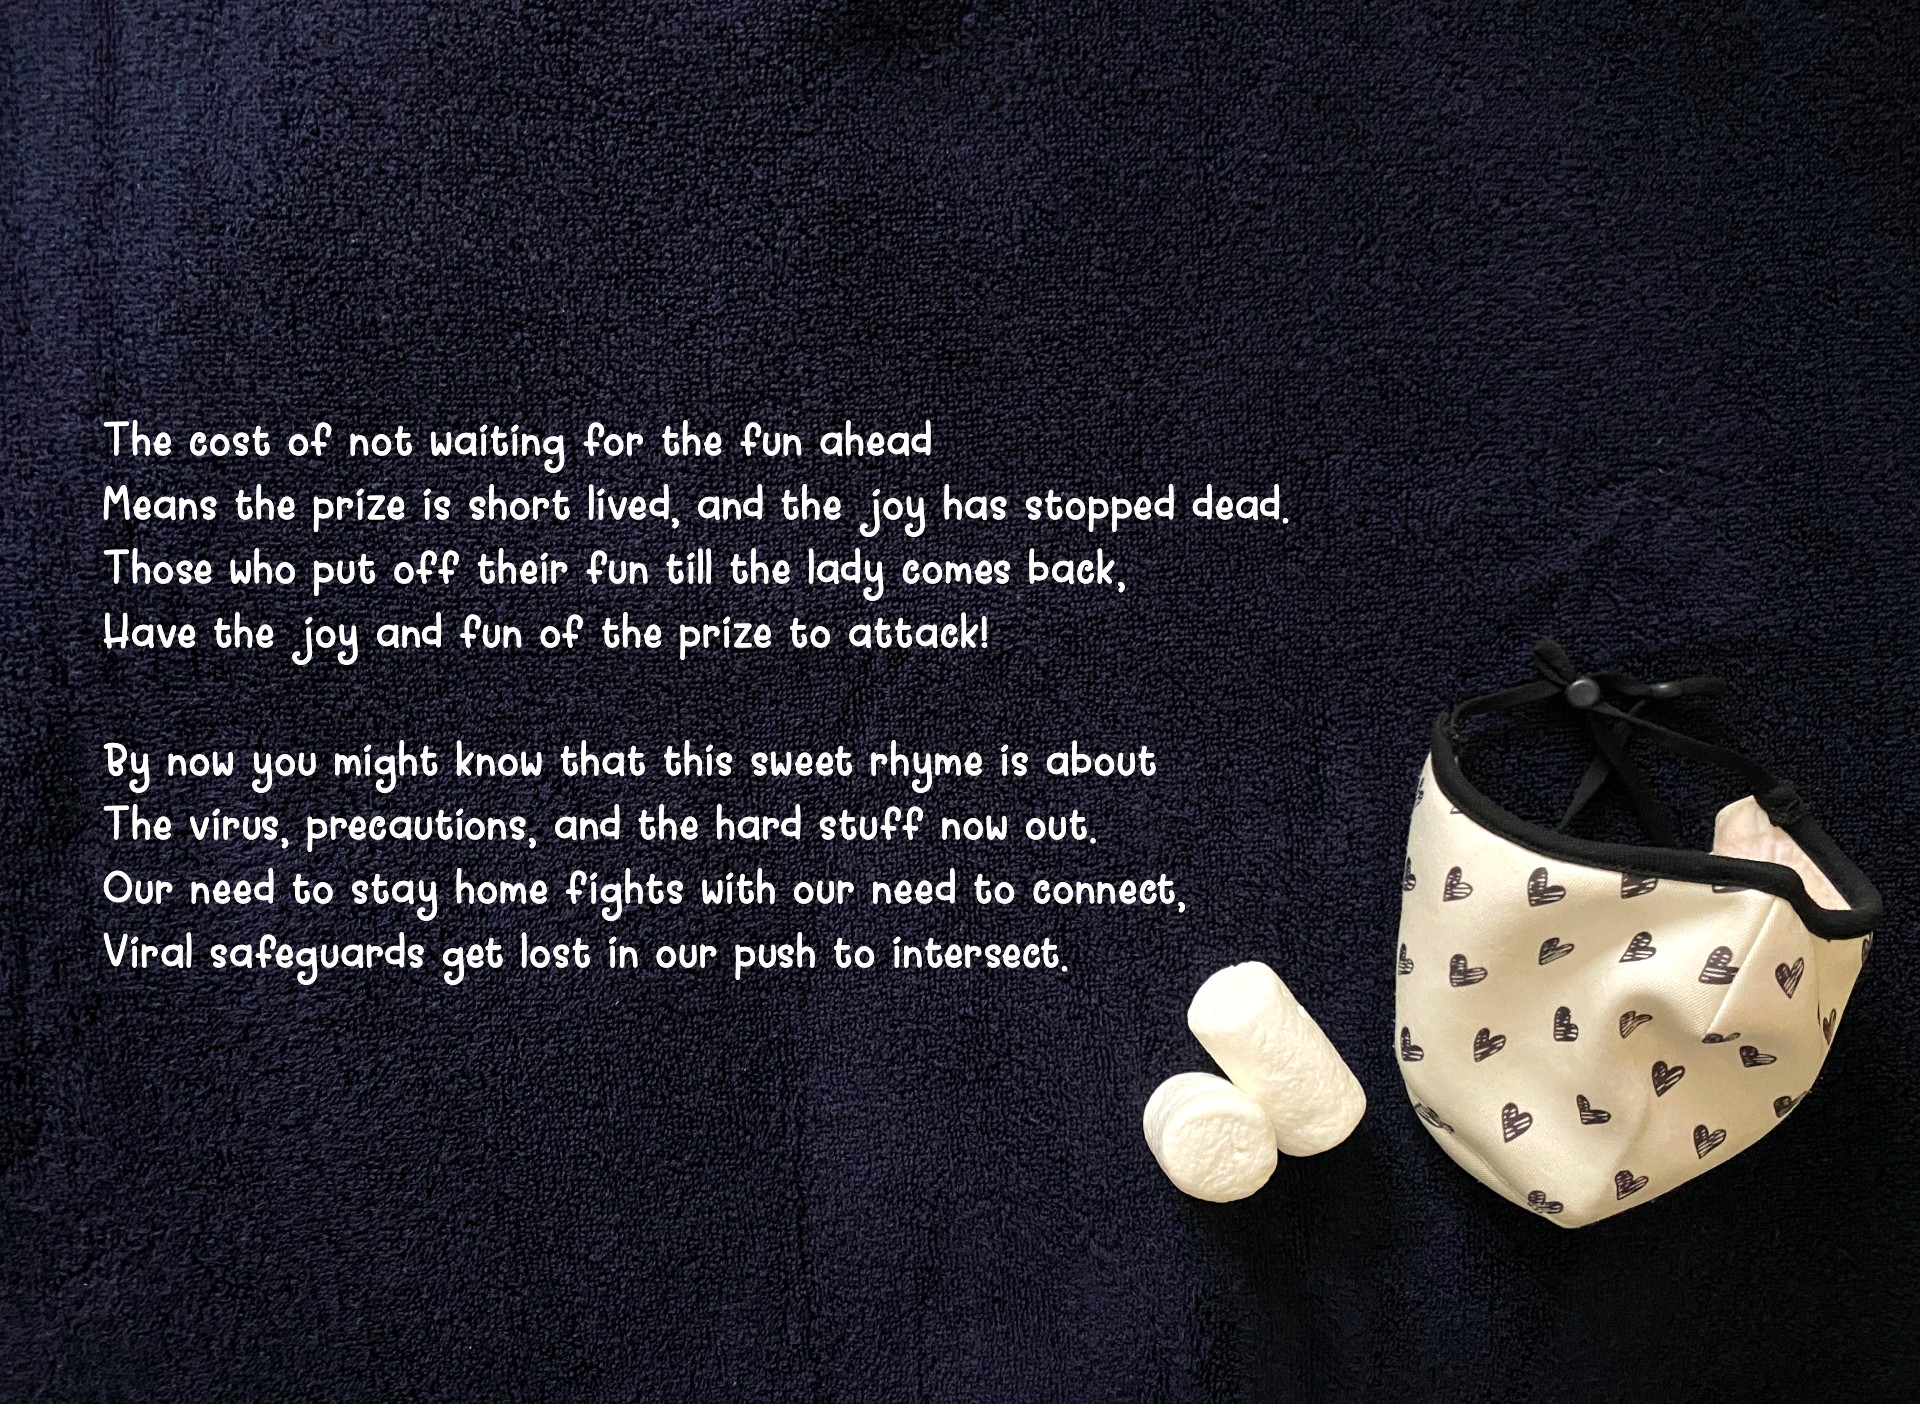 Marshmellovid-19 poem. A whimsical reminder to stay home